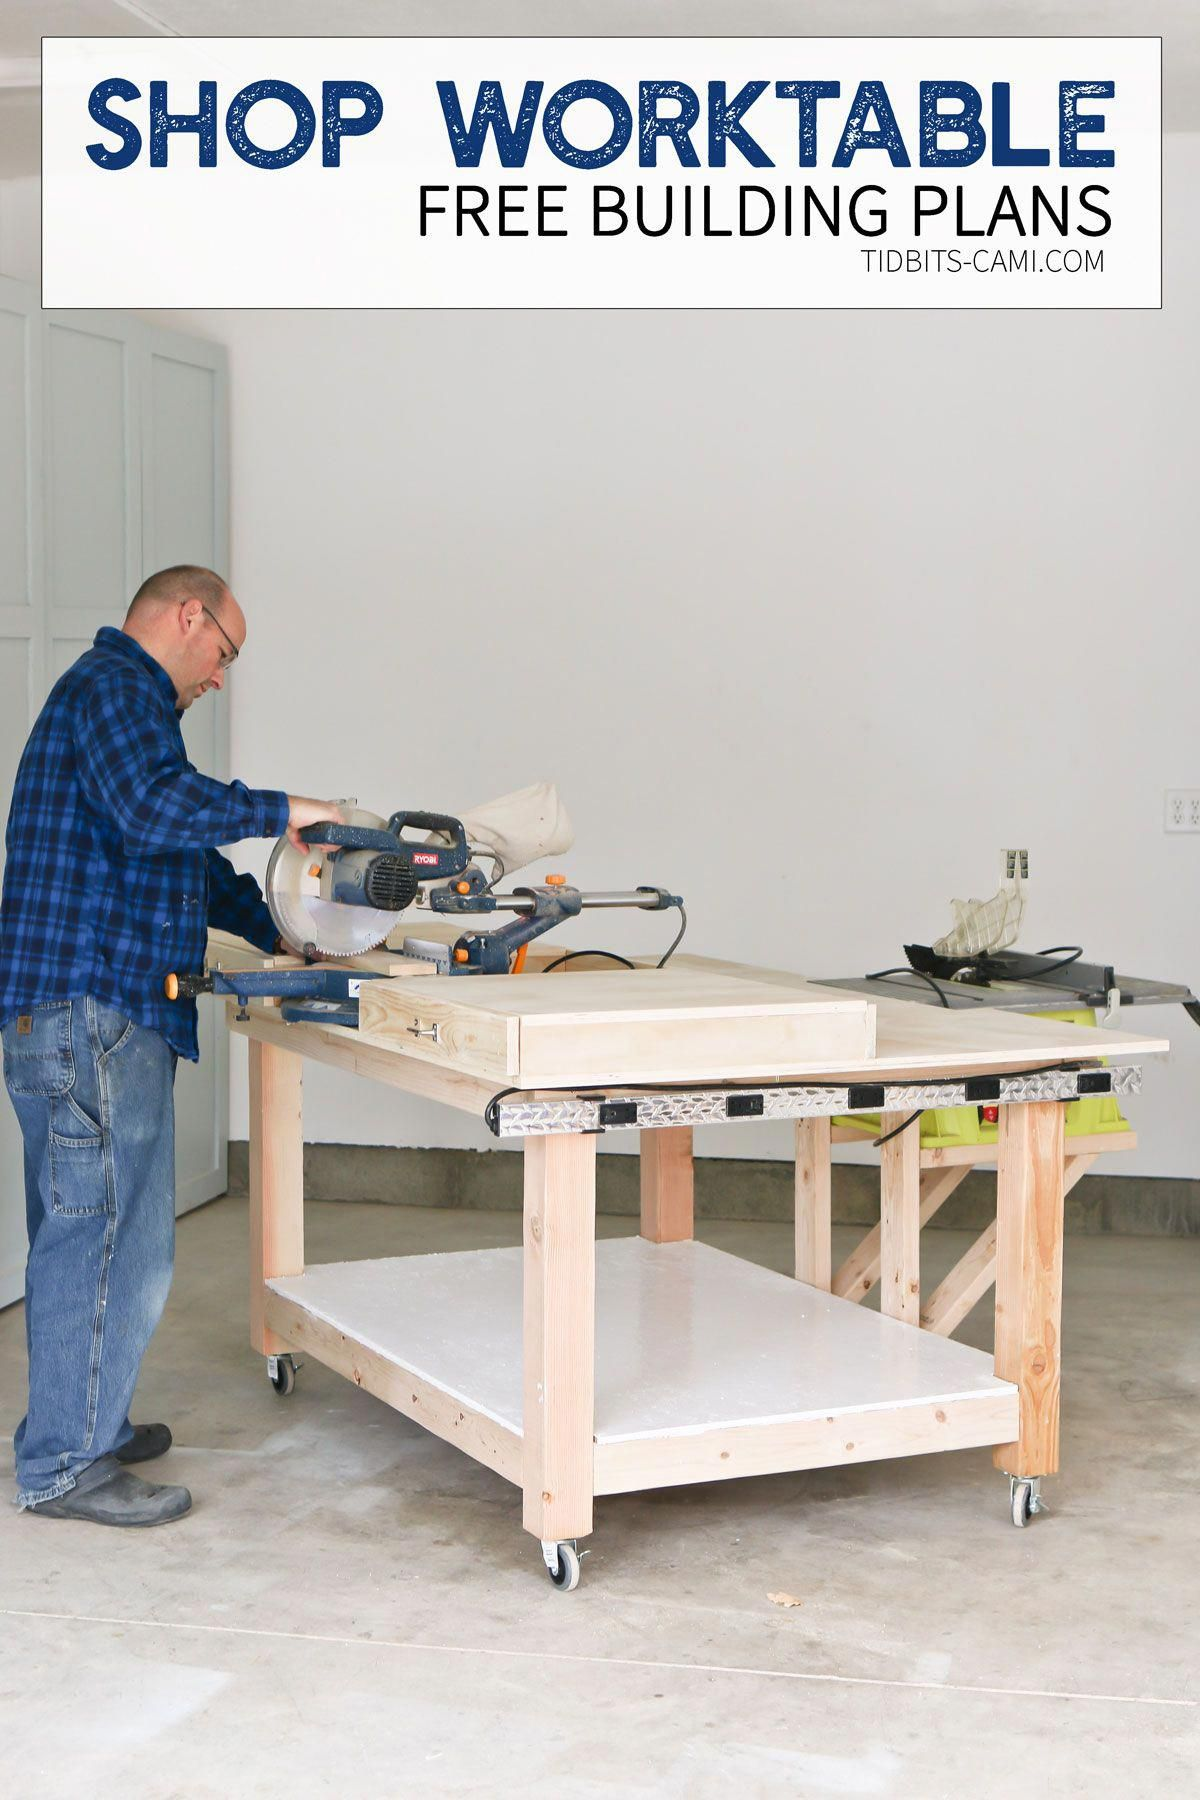 Woodworking Shop Near Me WoodworkingGifts Work table